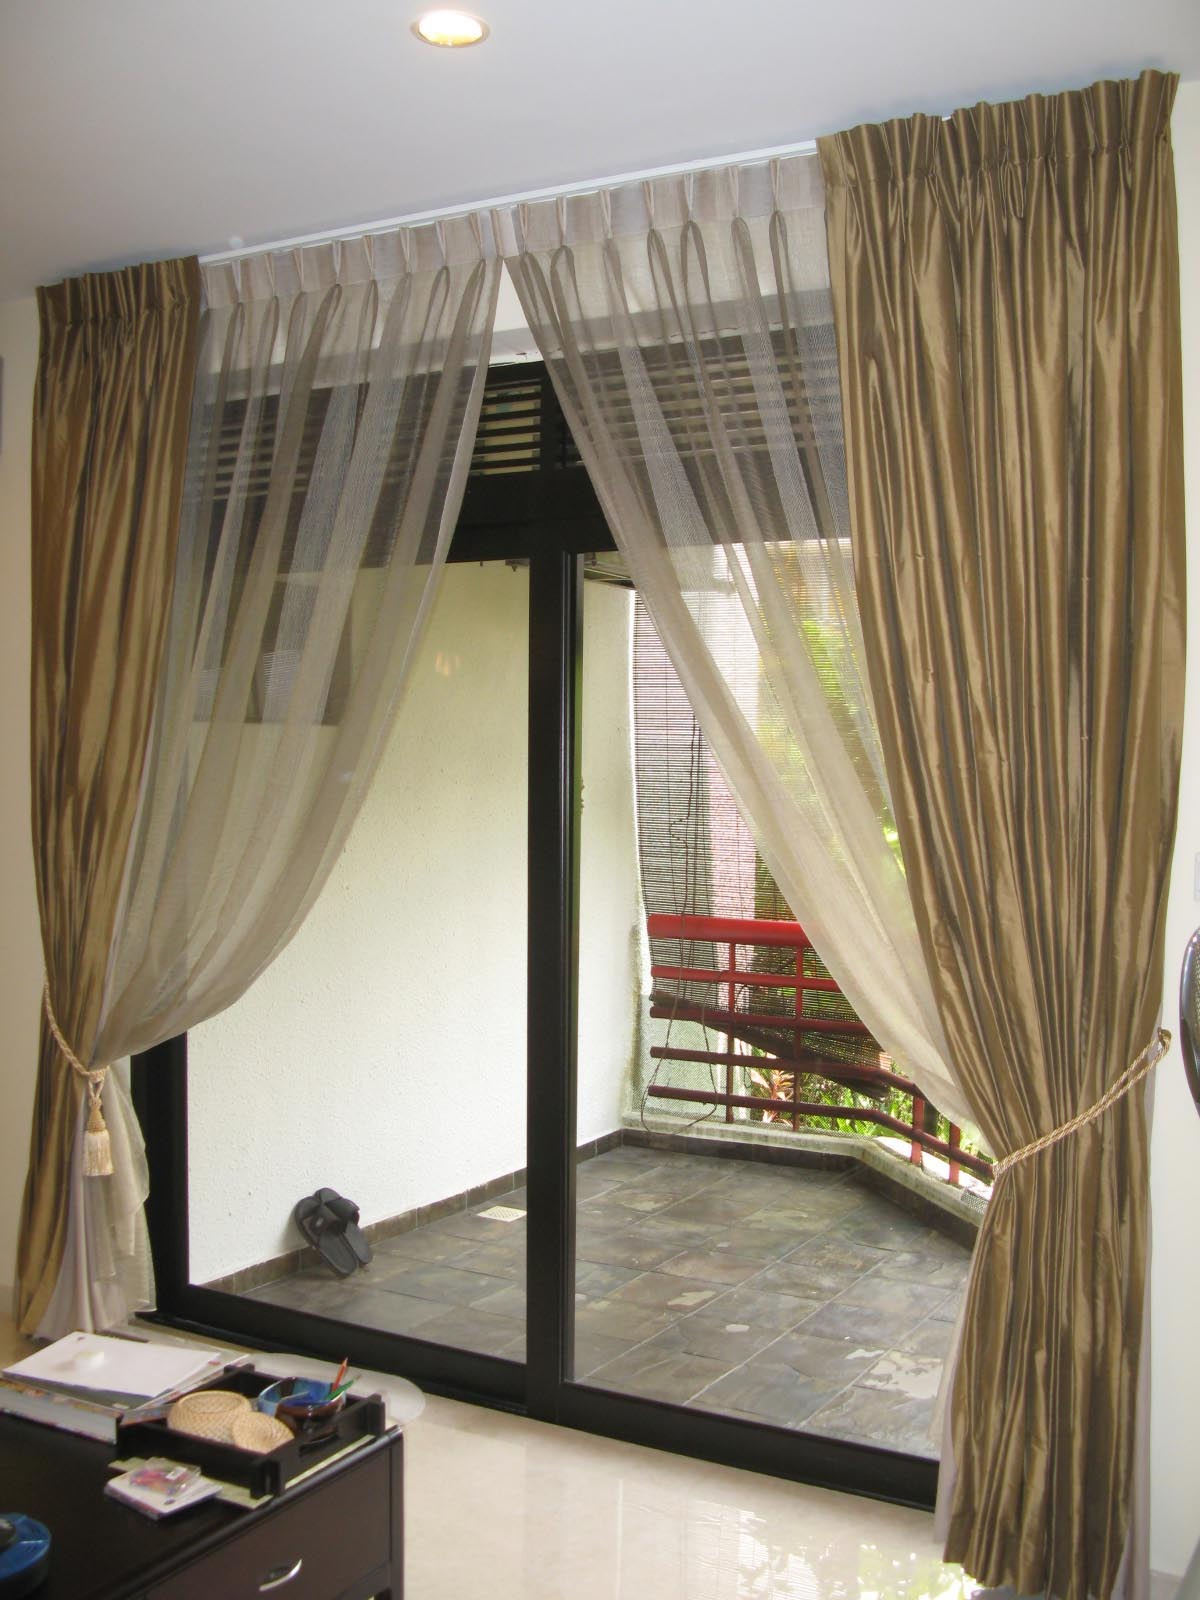 Curtain Rod Patio Door